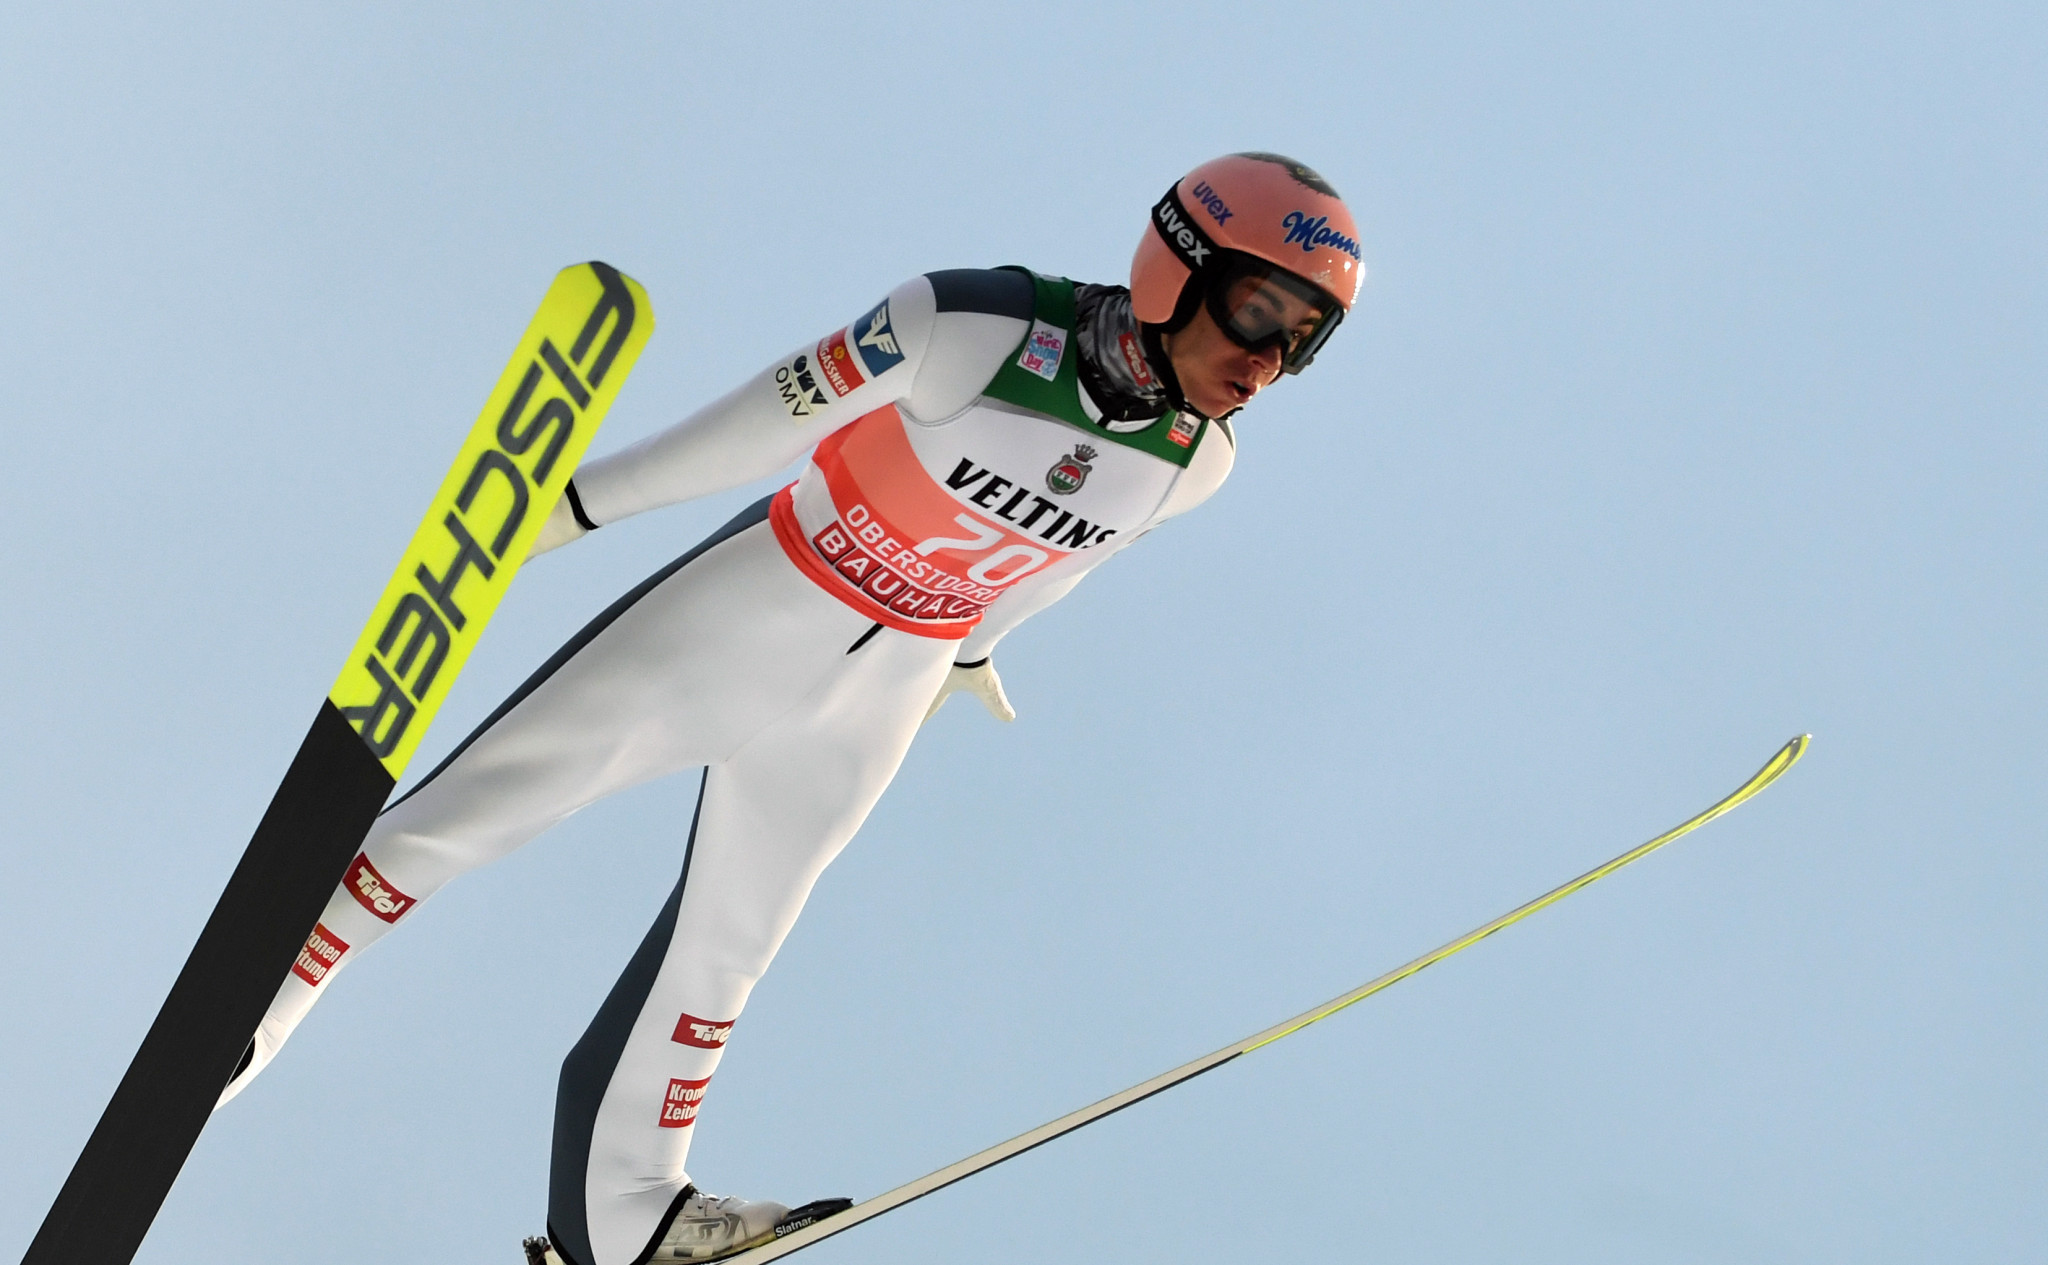 Kraft tops qualifying for Four Hills Tournament opener in Oberstdorf